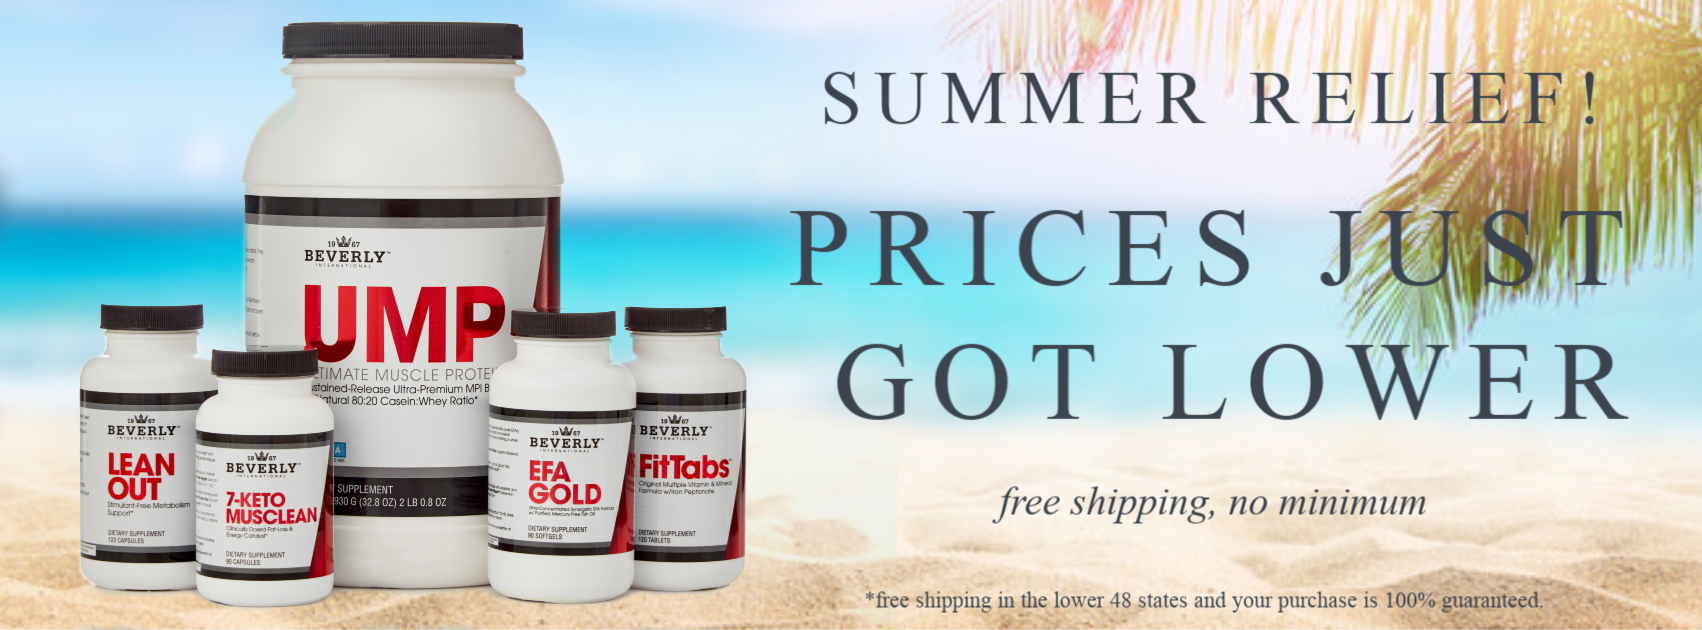 summer-relief-banner-002-.png